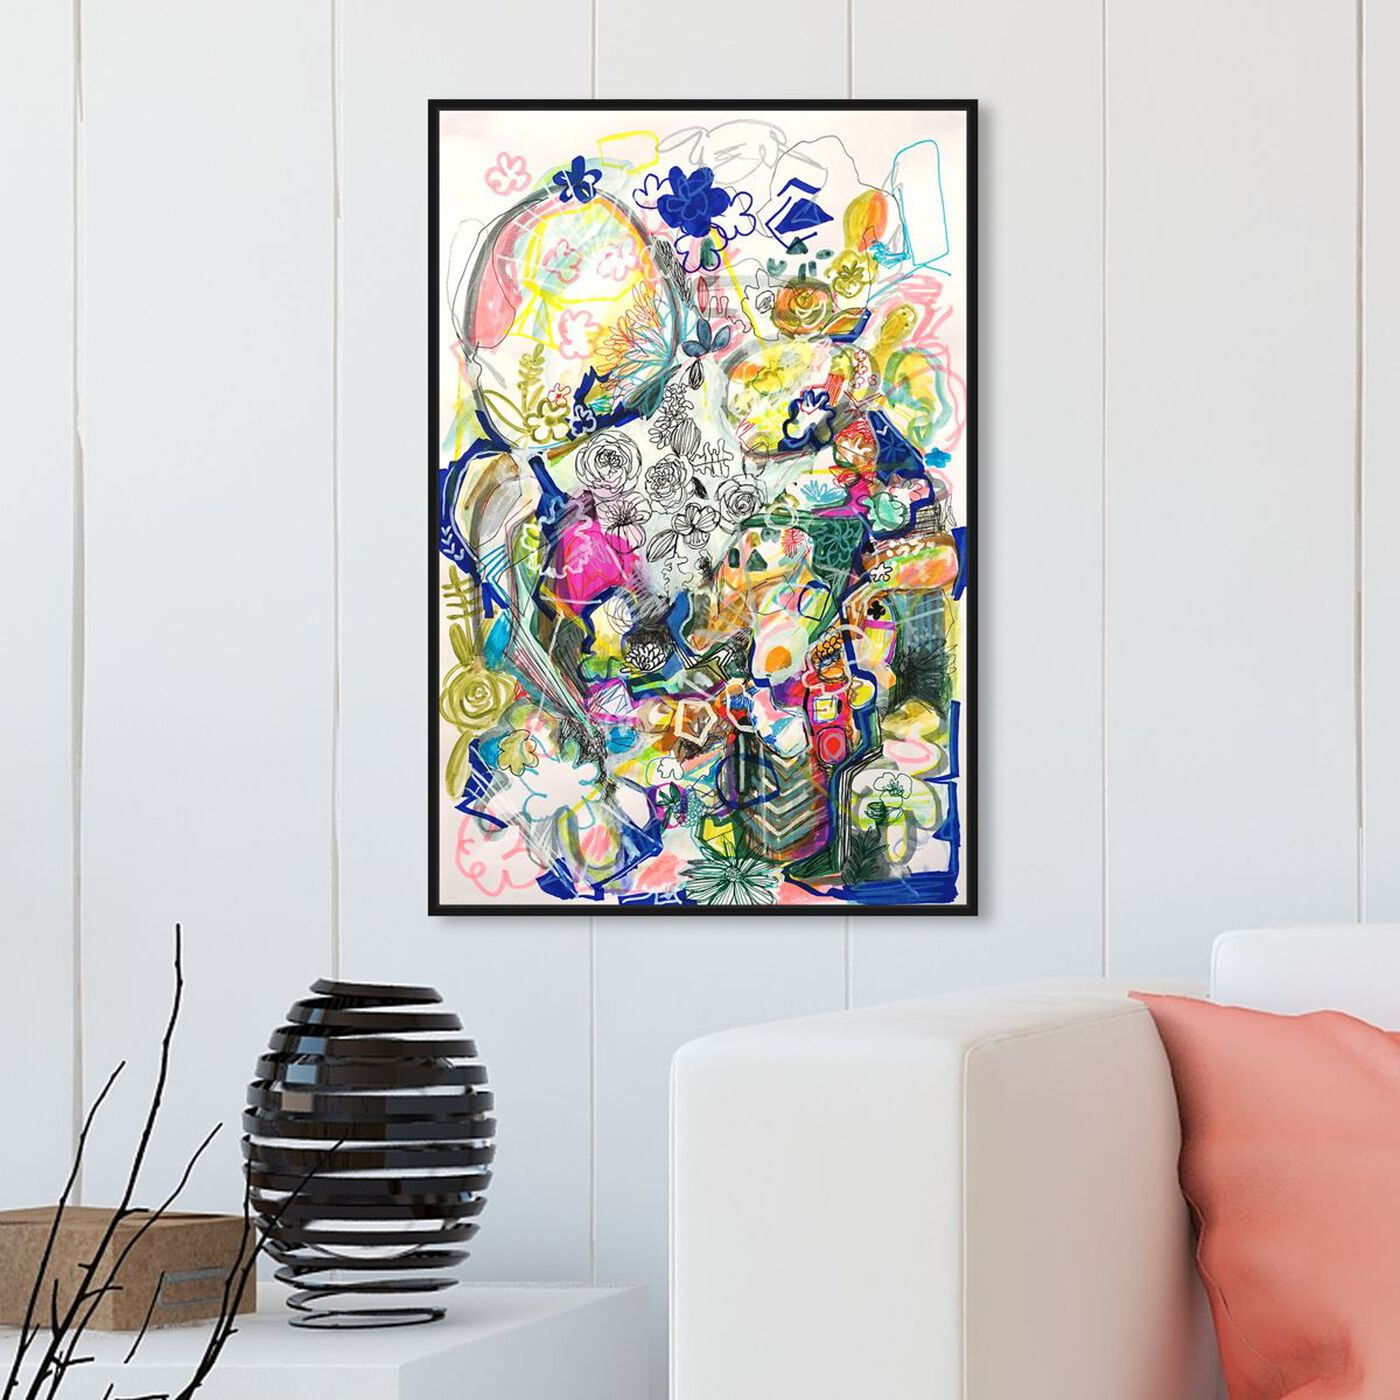 Hanging view of Dancing In The Clouds featuring abstract and textures art.